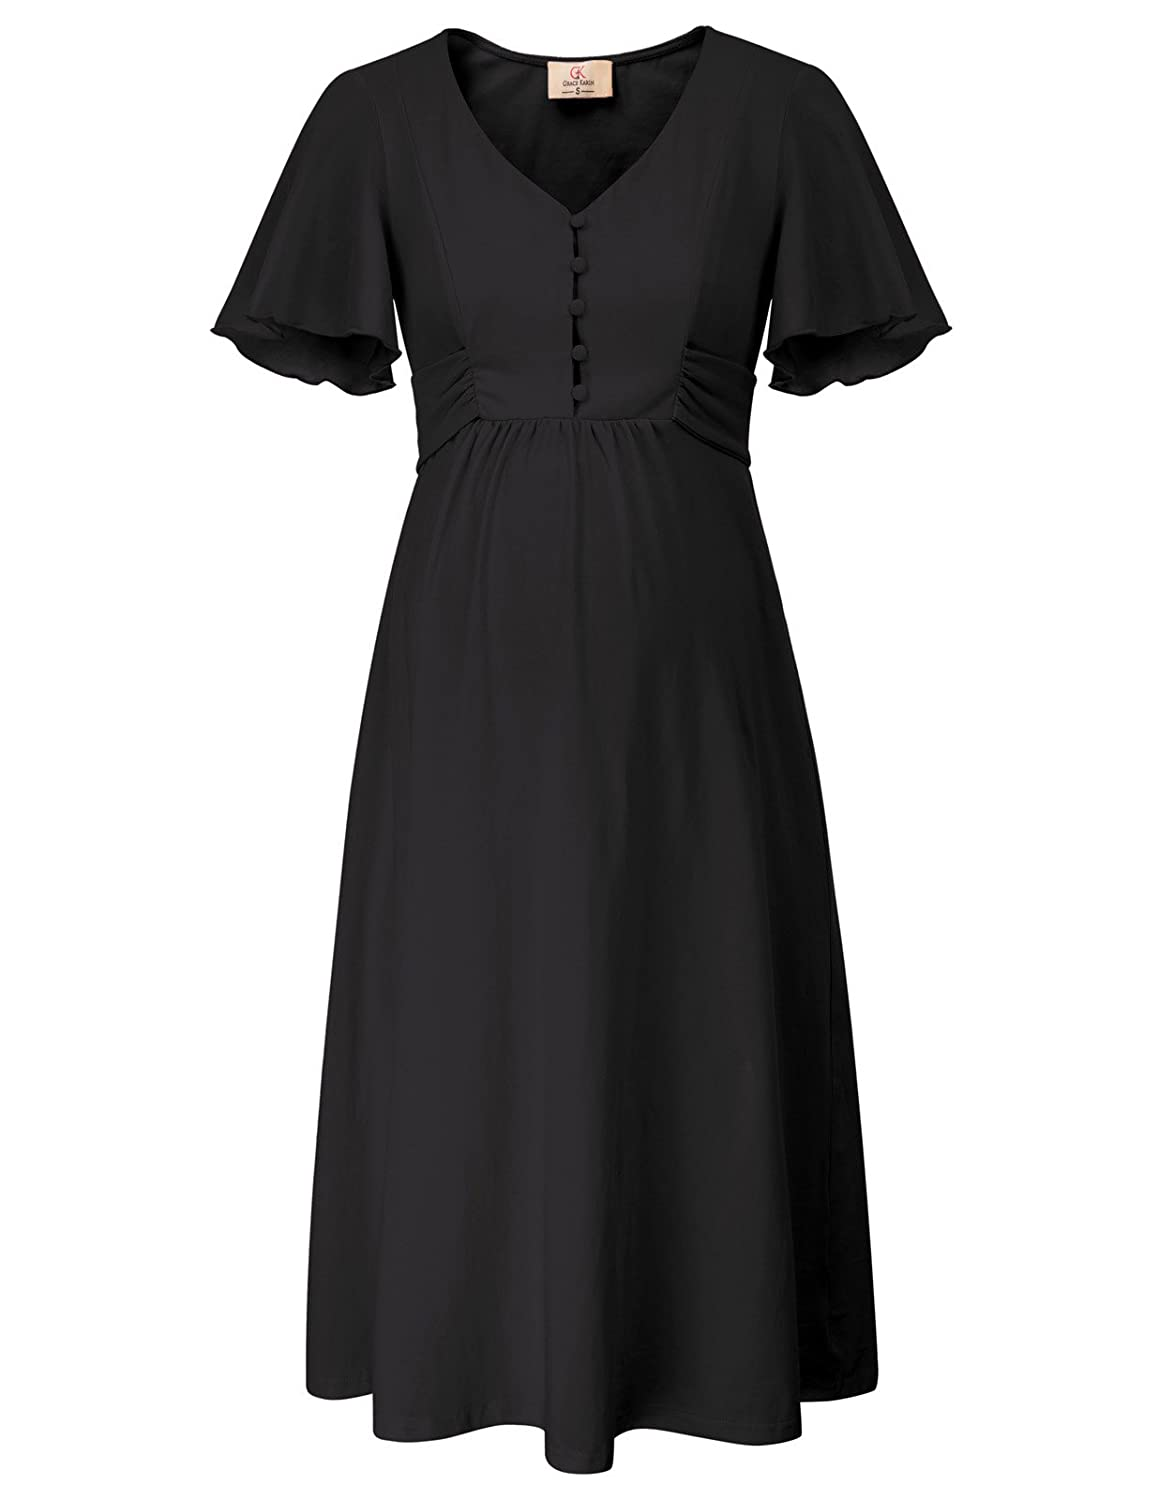 Vintage Maternity Clothing Styles 1910-1960  Maternity Short Sleeve Cotton A-Line Dress with Buttons GRACE KARIN Womens $26.99 AT vintagedancer.com